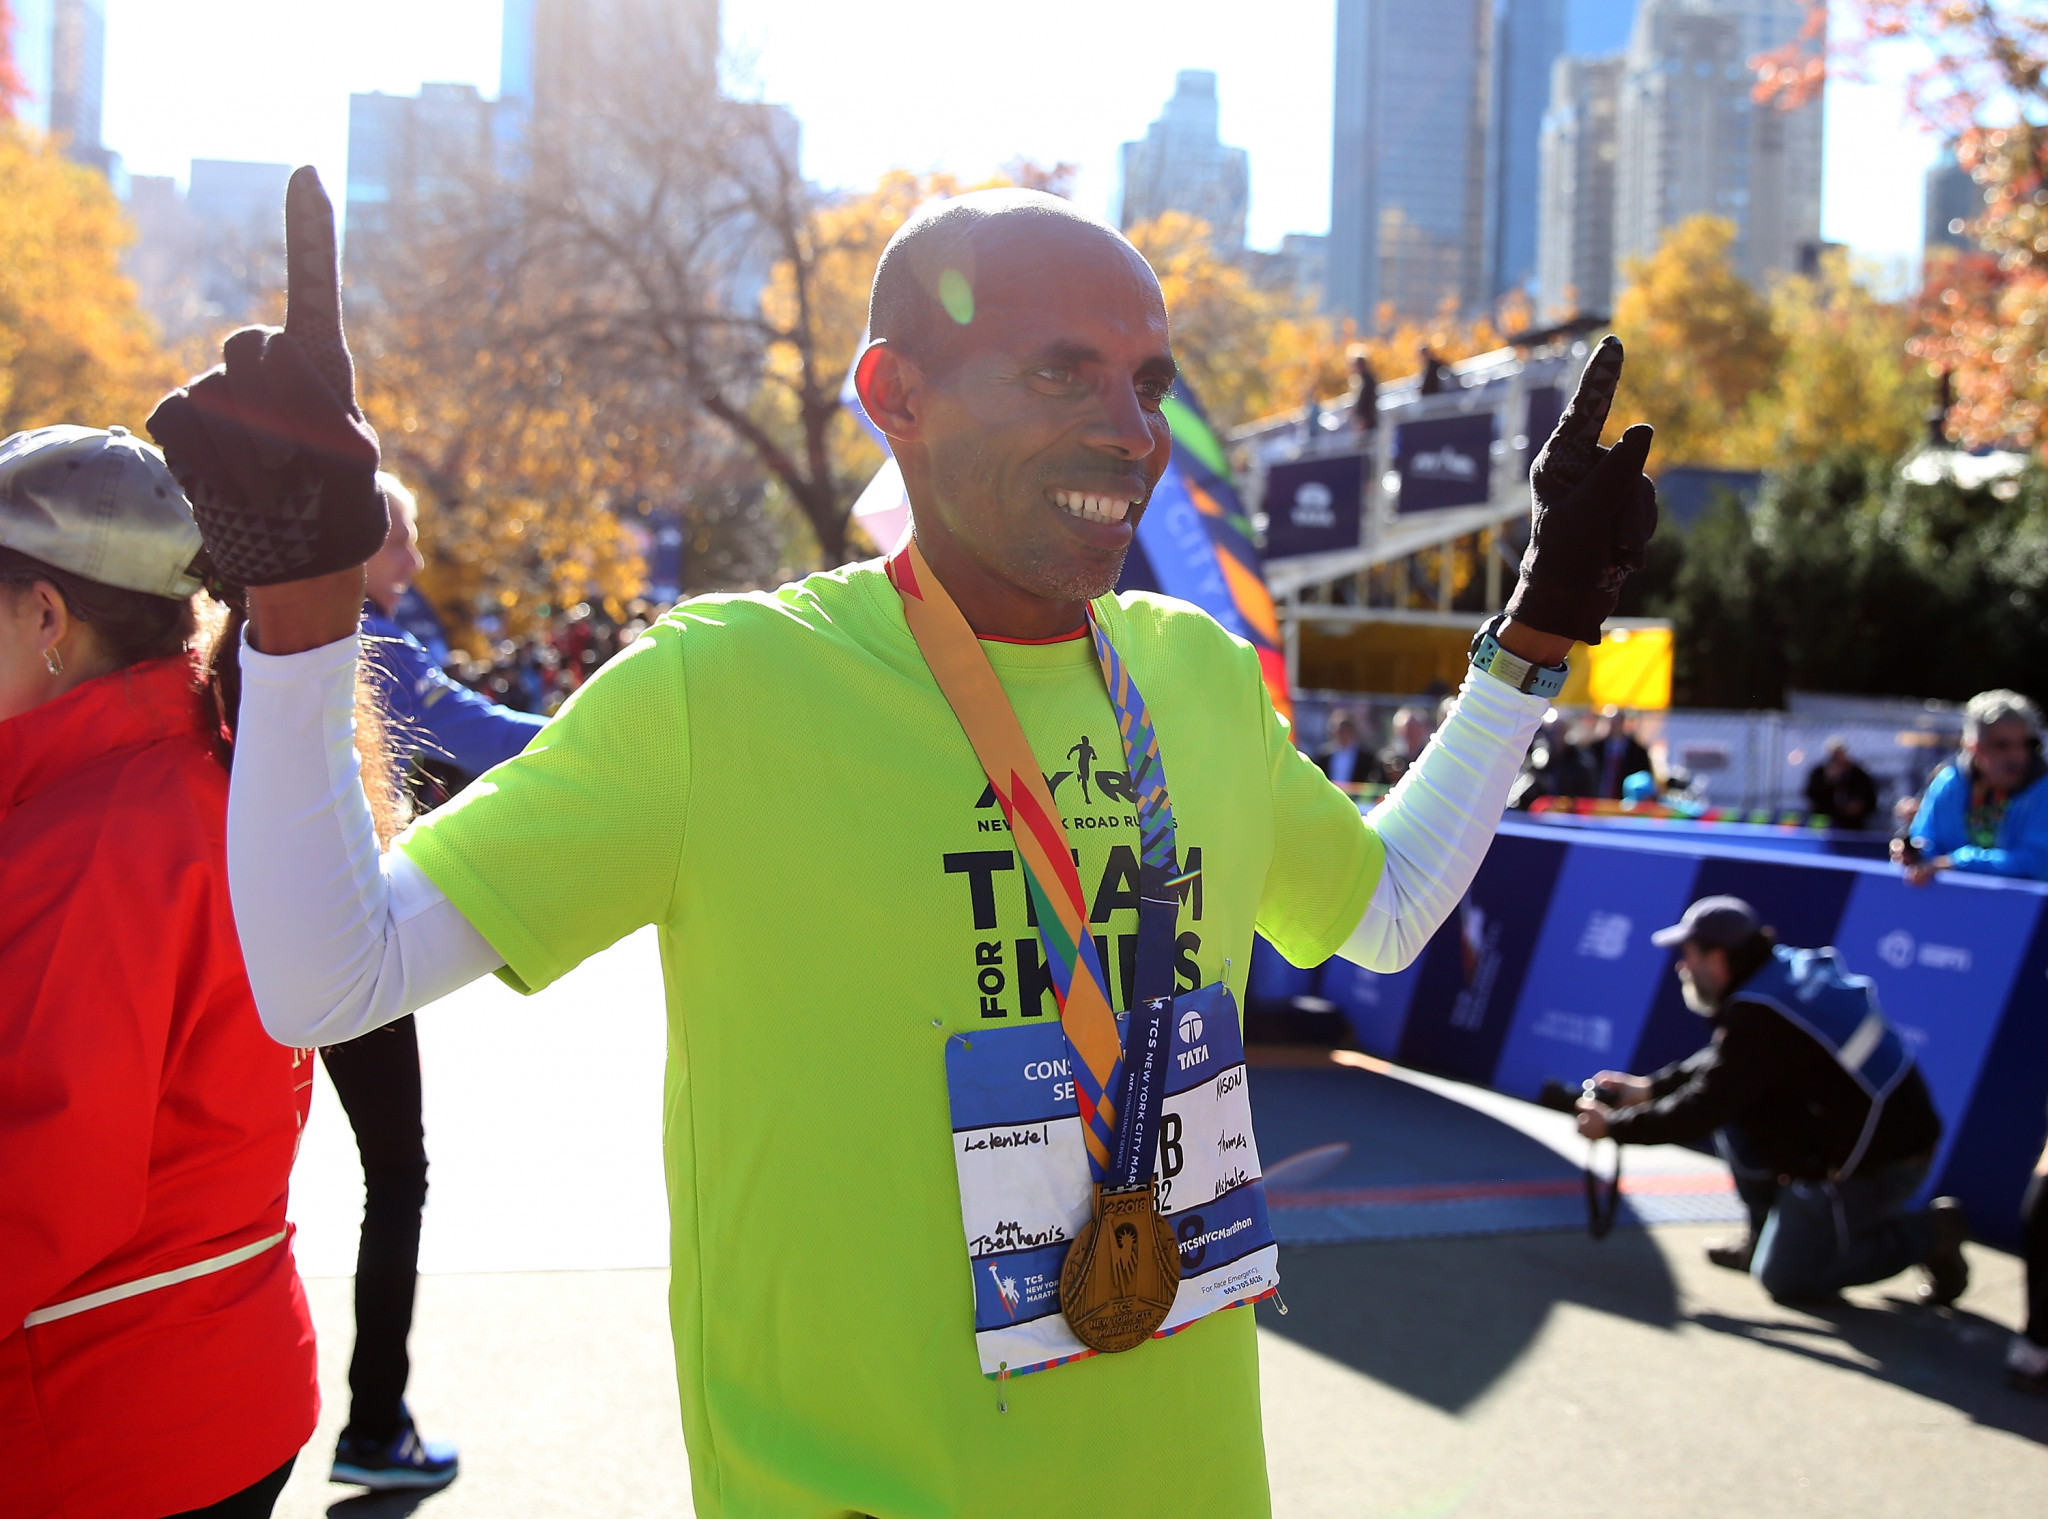 Former New York City Marathon champion Meb Keflezighi will be teaming up with retired tennis player James Blake ©Getty Images